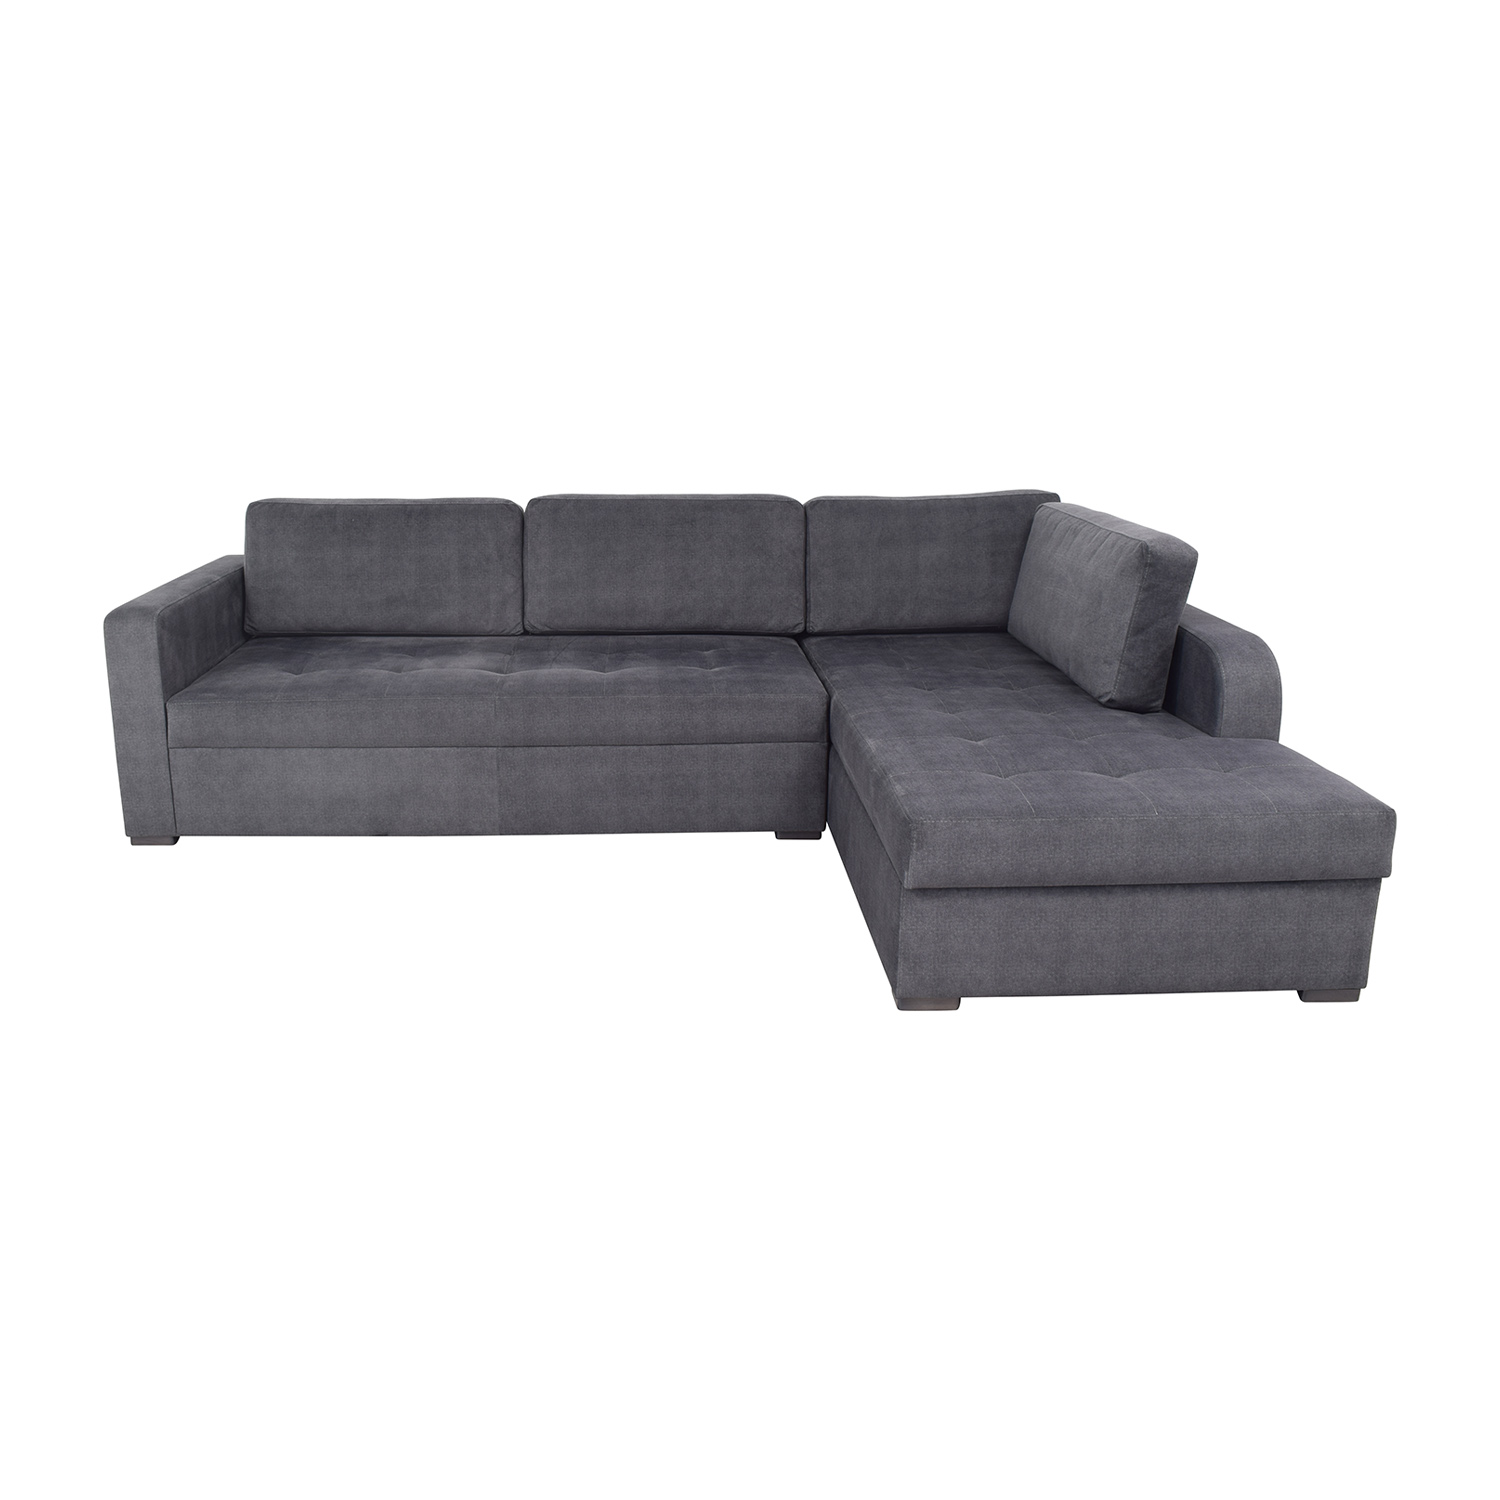 Lazzoni Vetro Chaise Sleeper Sofa with Storage / Sofas